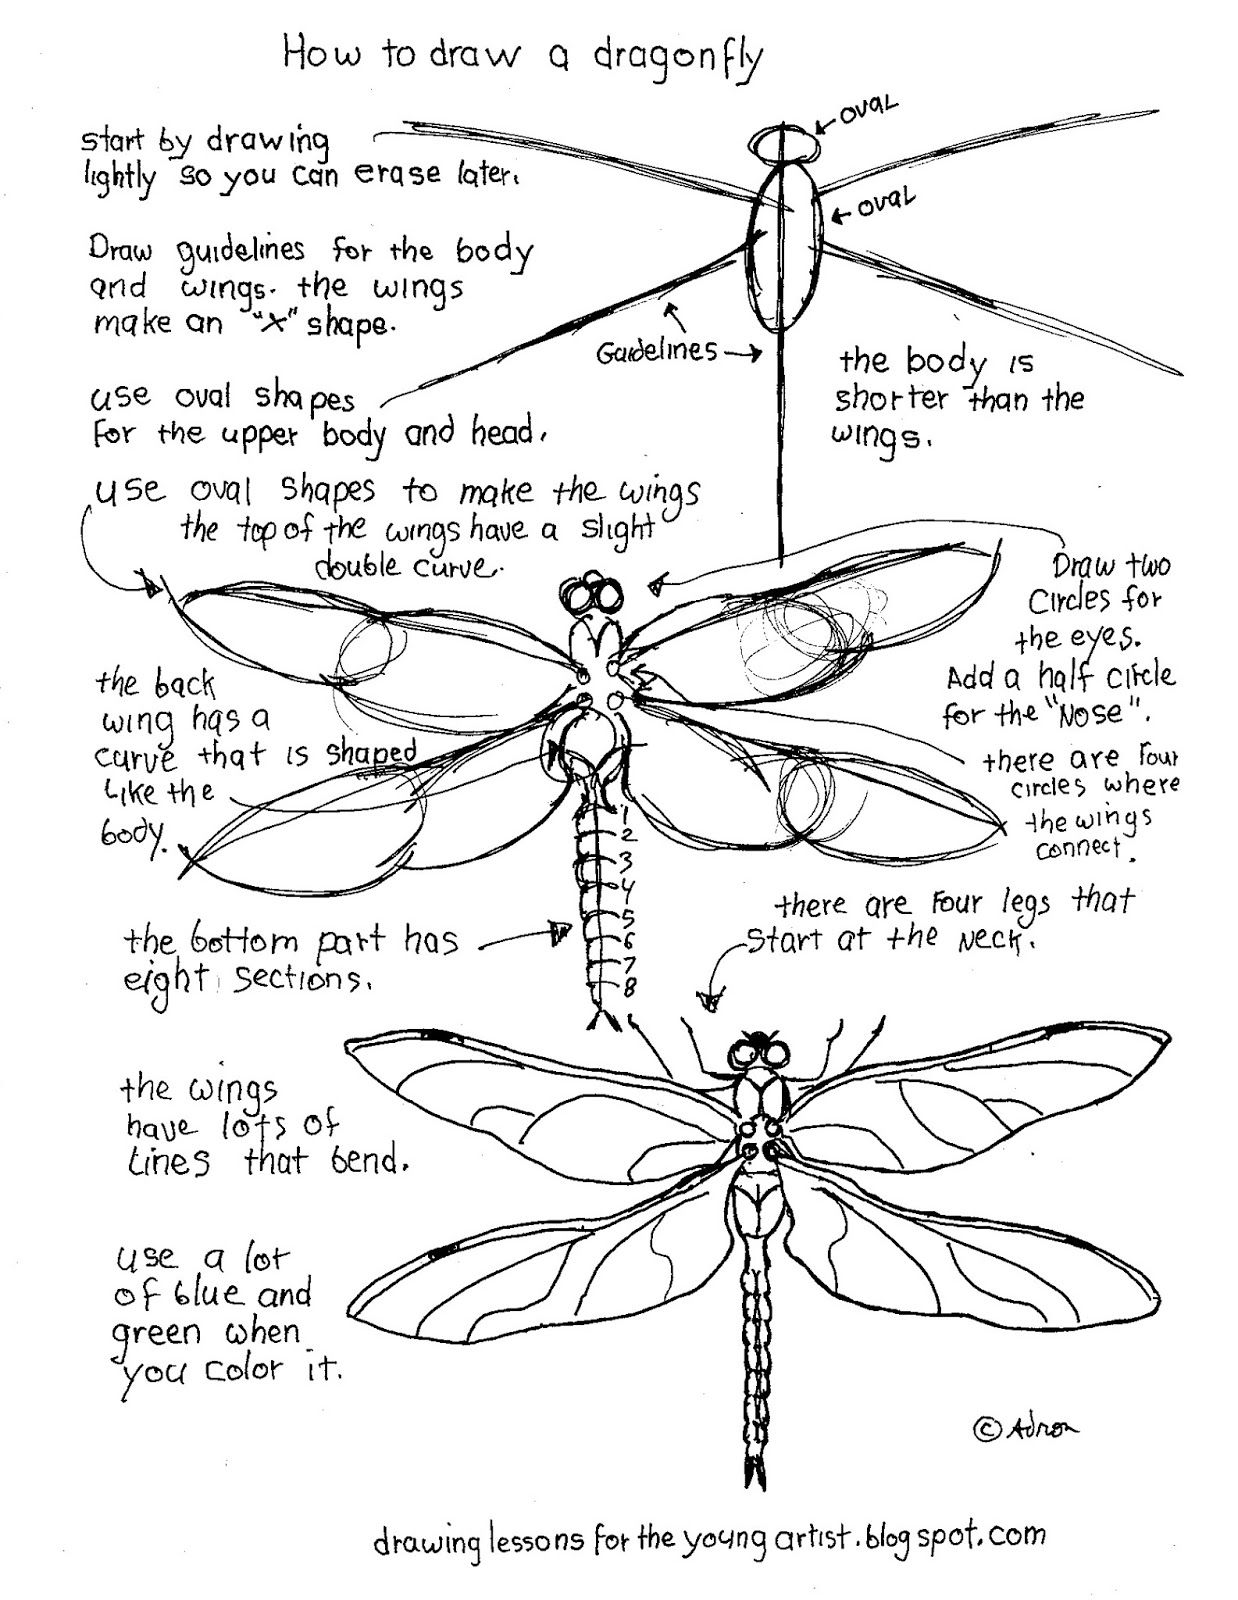 hight resolution of how to draw worksheets for the young artist printable how to draw a dragonfly worksheet there are project notes at the blog